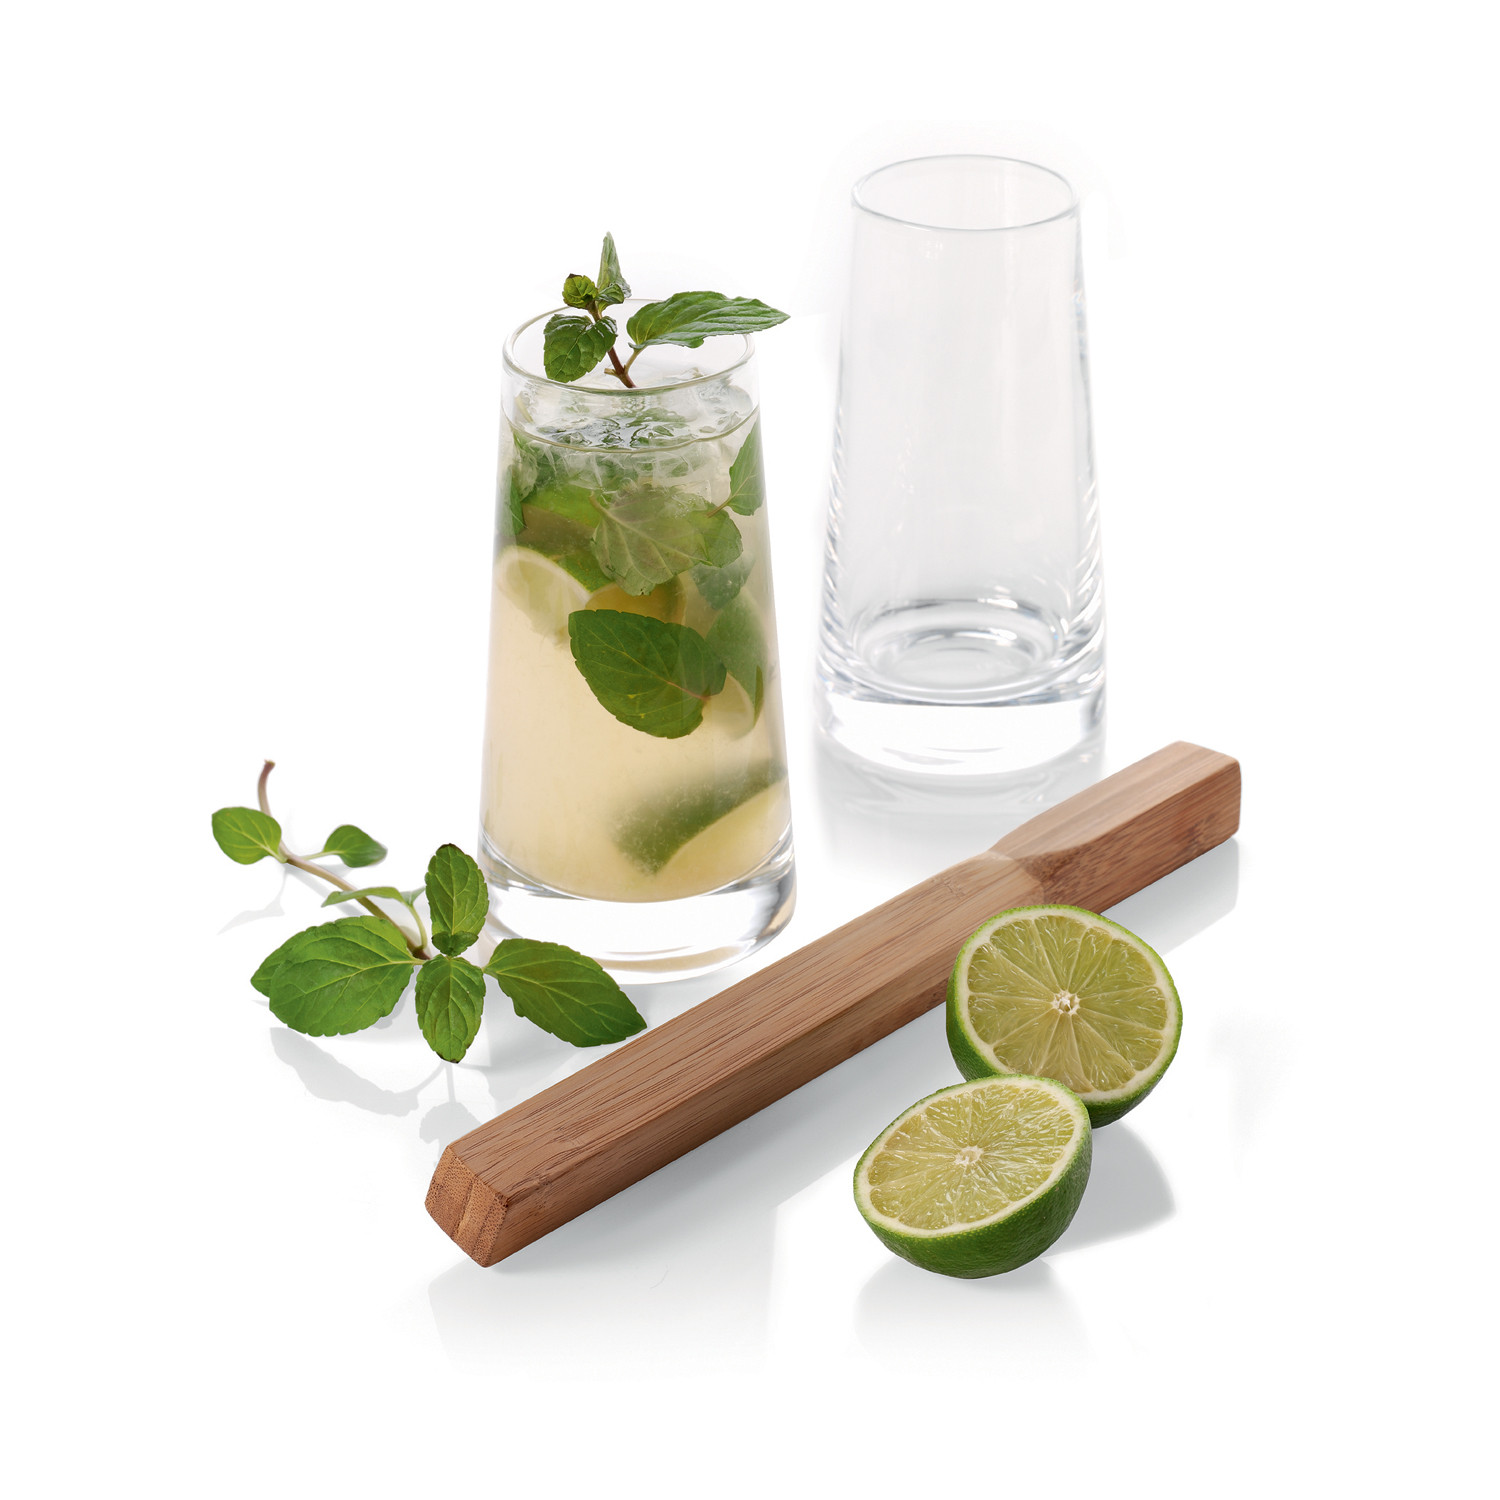 Mojito Glas Ego Together Glass Collection Award Winning Danish Design